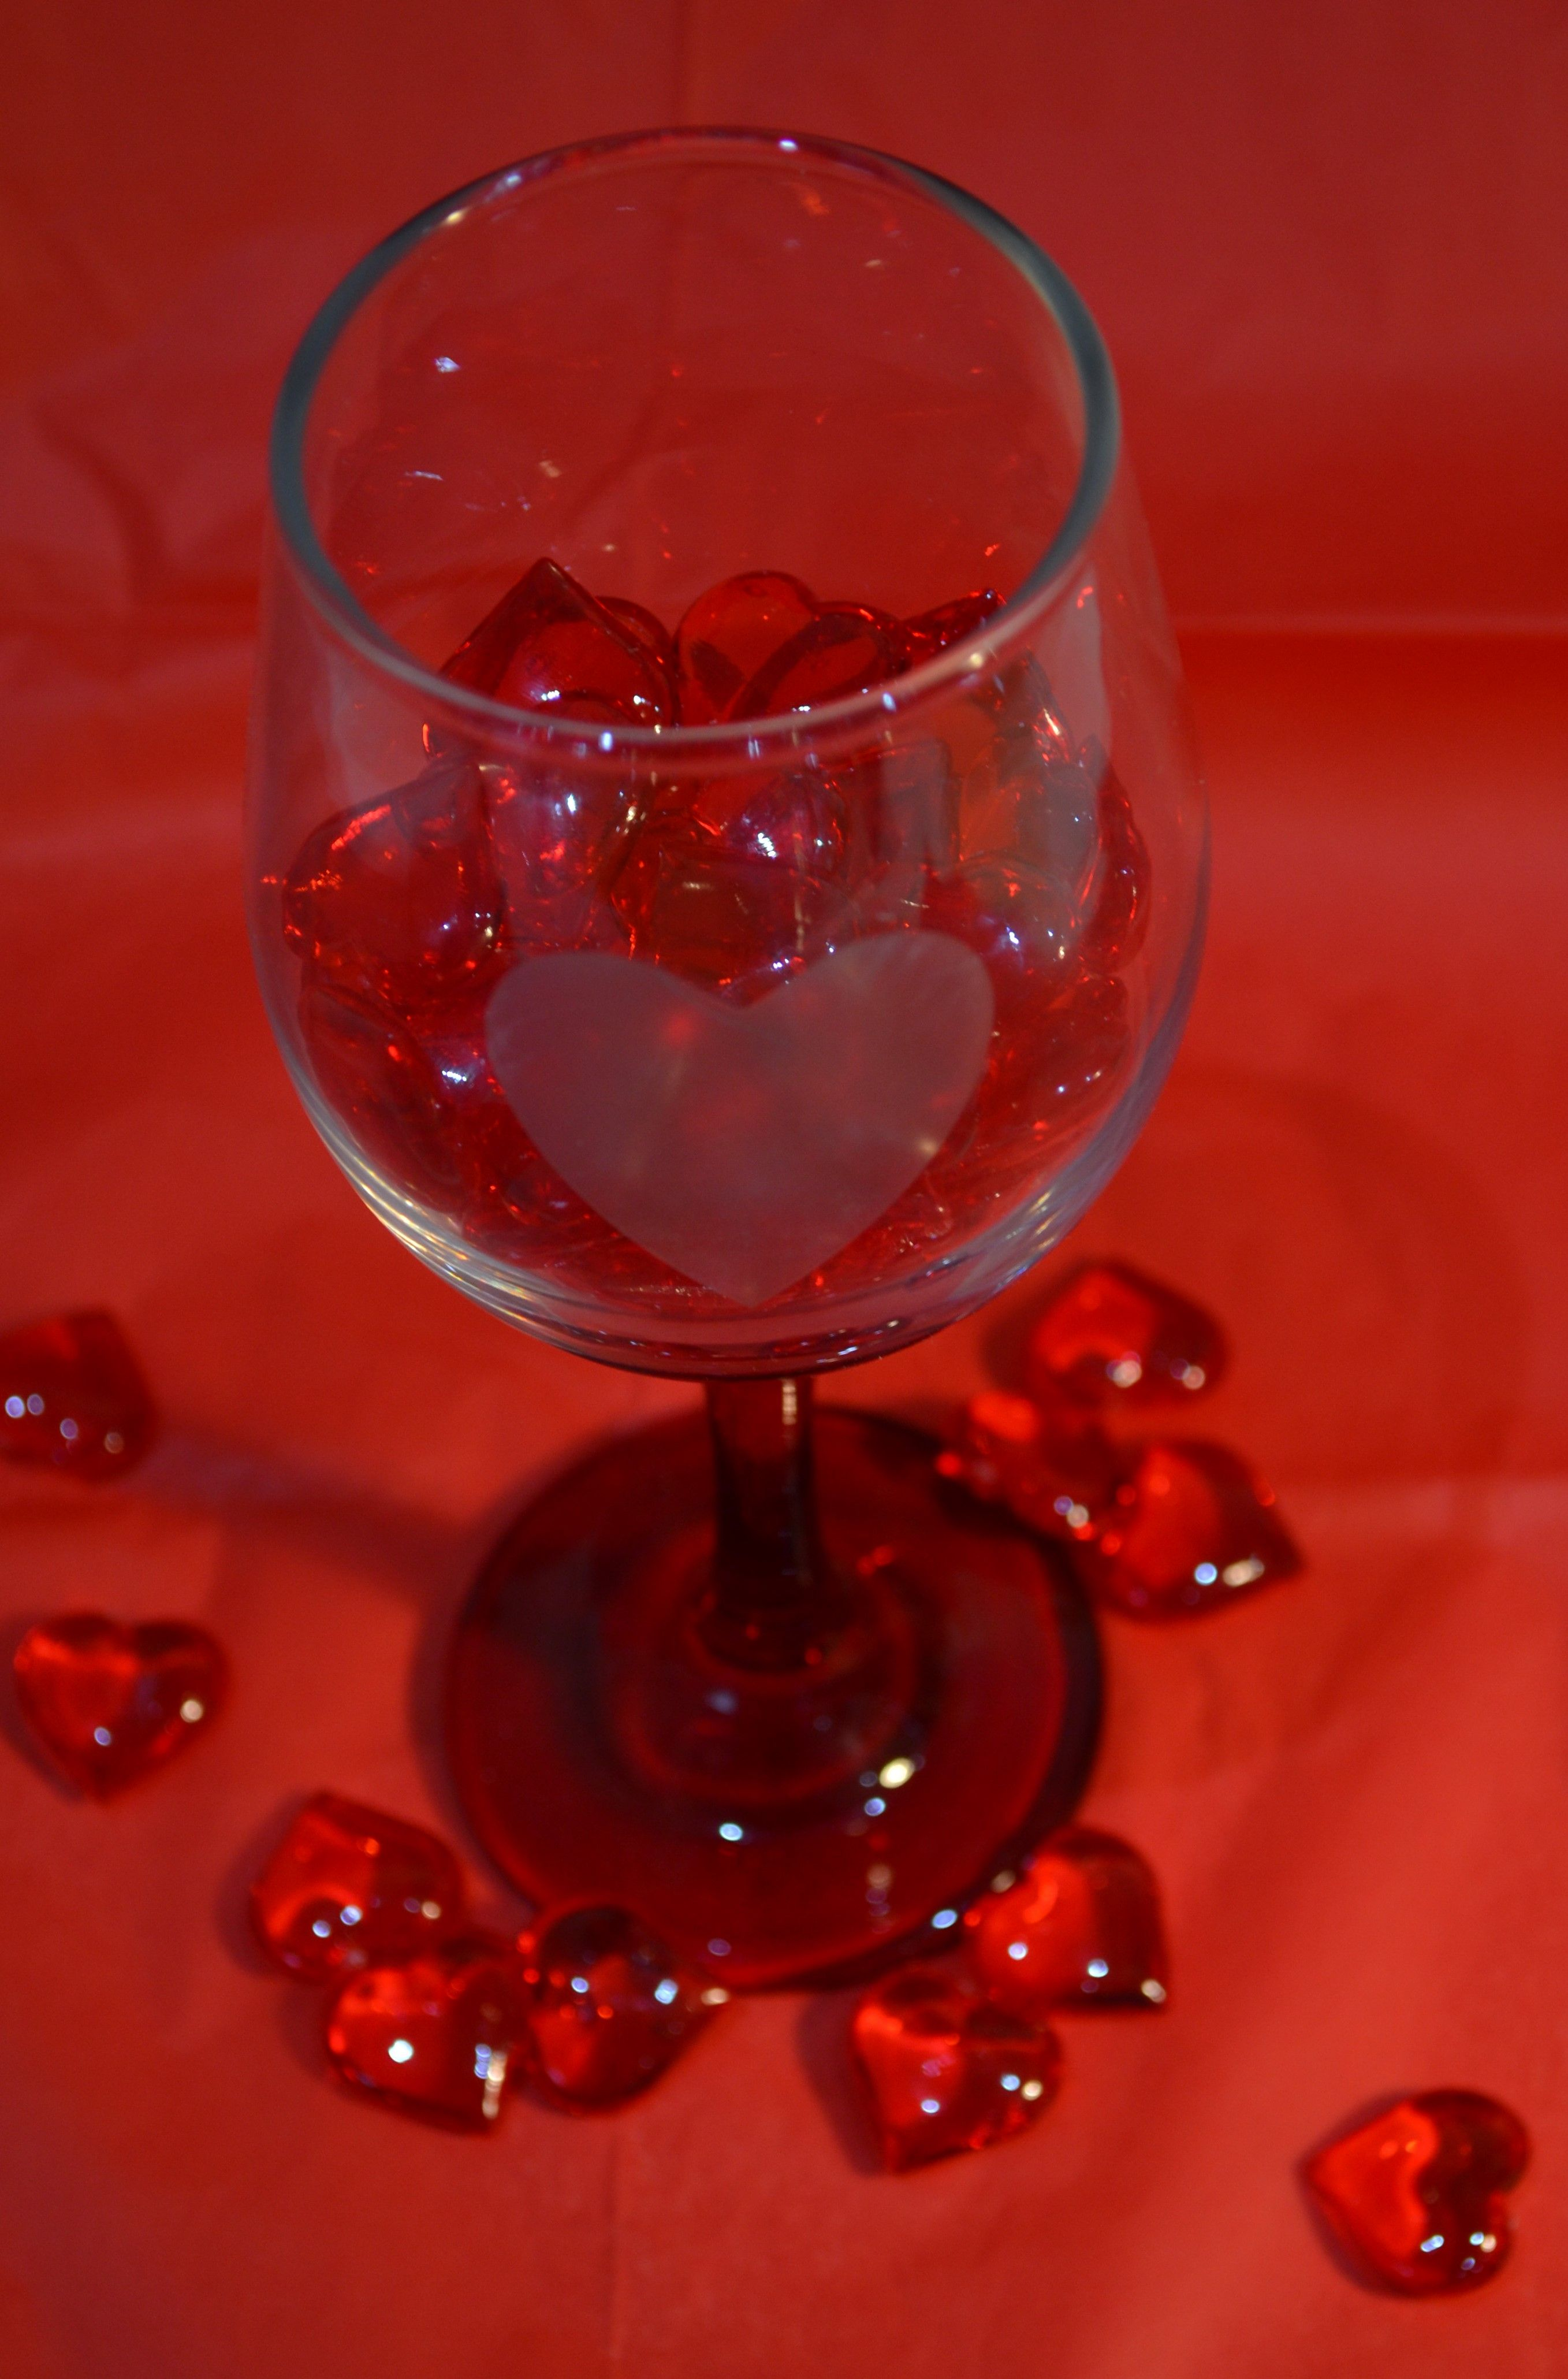 Pin By Vidakush On Poundland Valentine S Red Aesthetic Aesthetic Colors Red